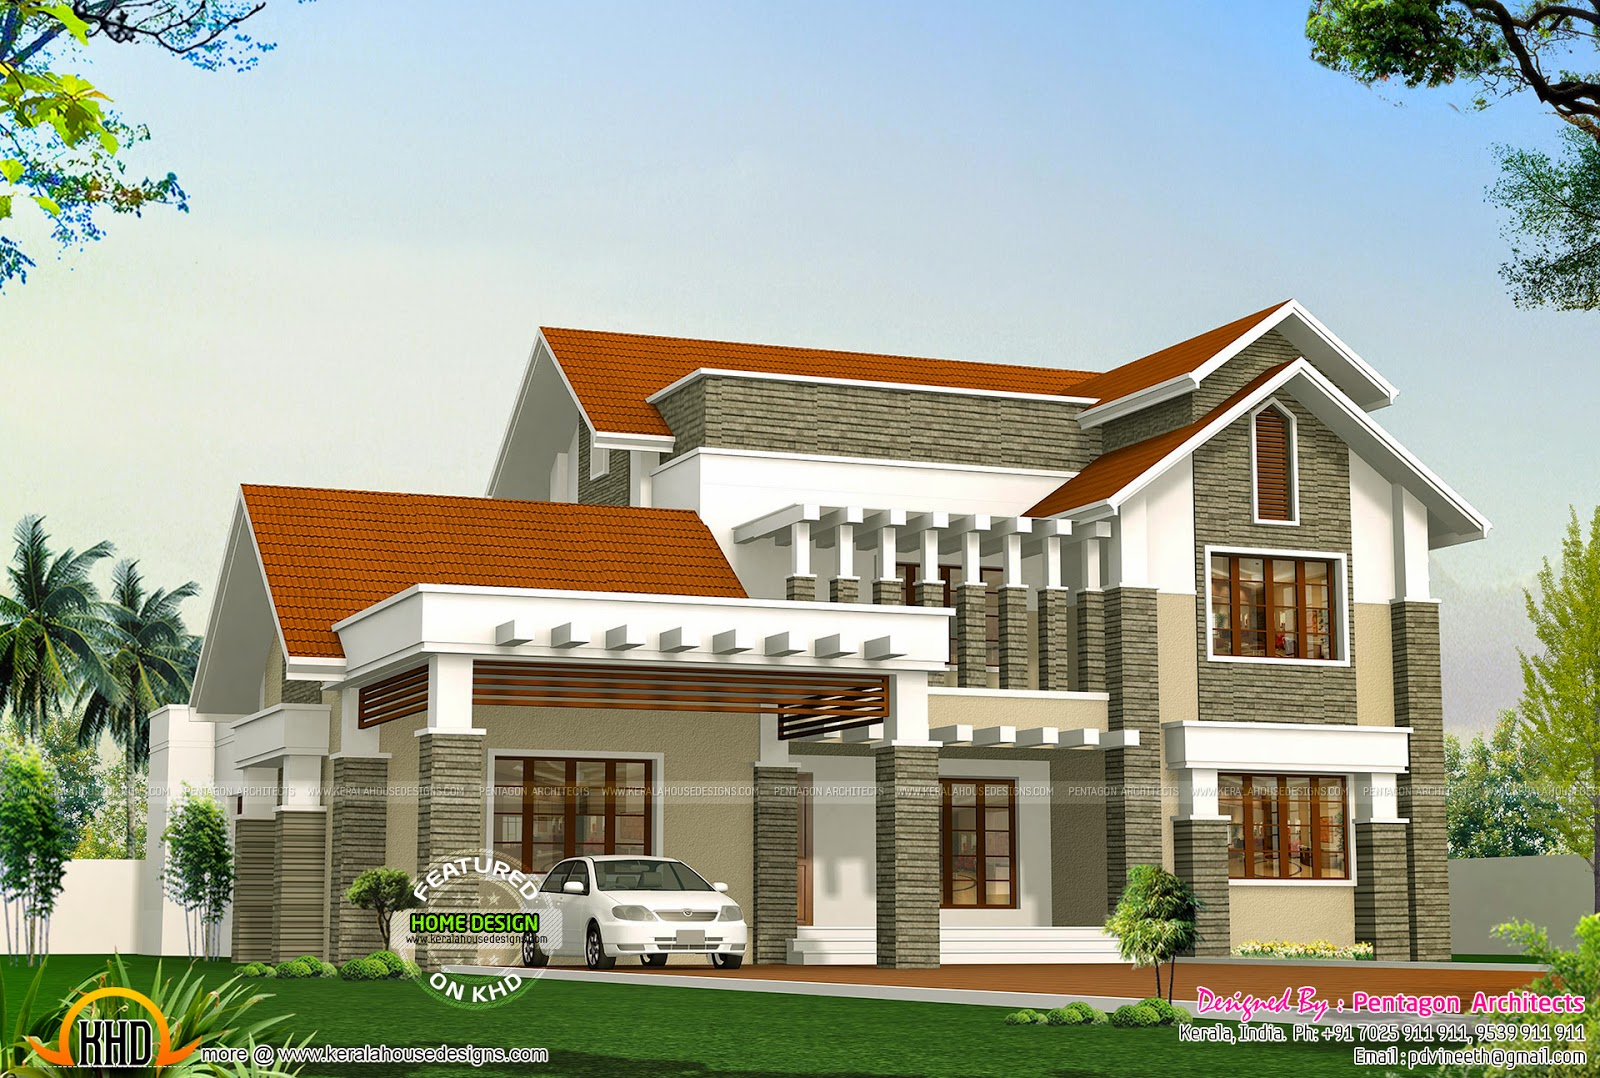 9 beautiful kerala houses by pentagon architects kerala for House plans with photos in kerala style